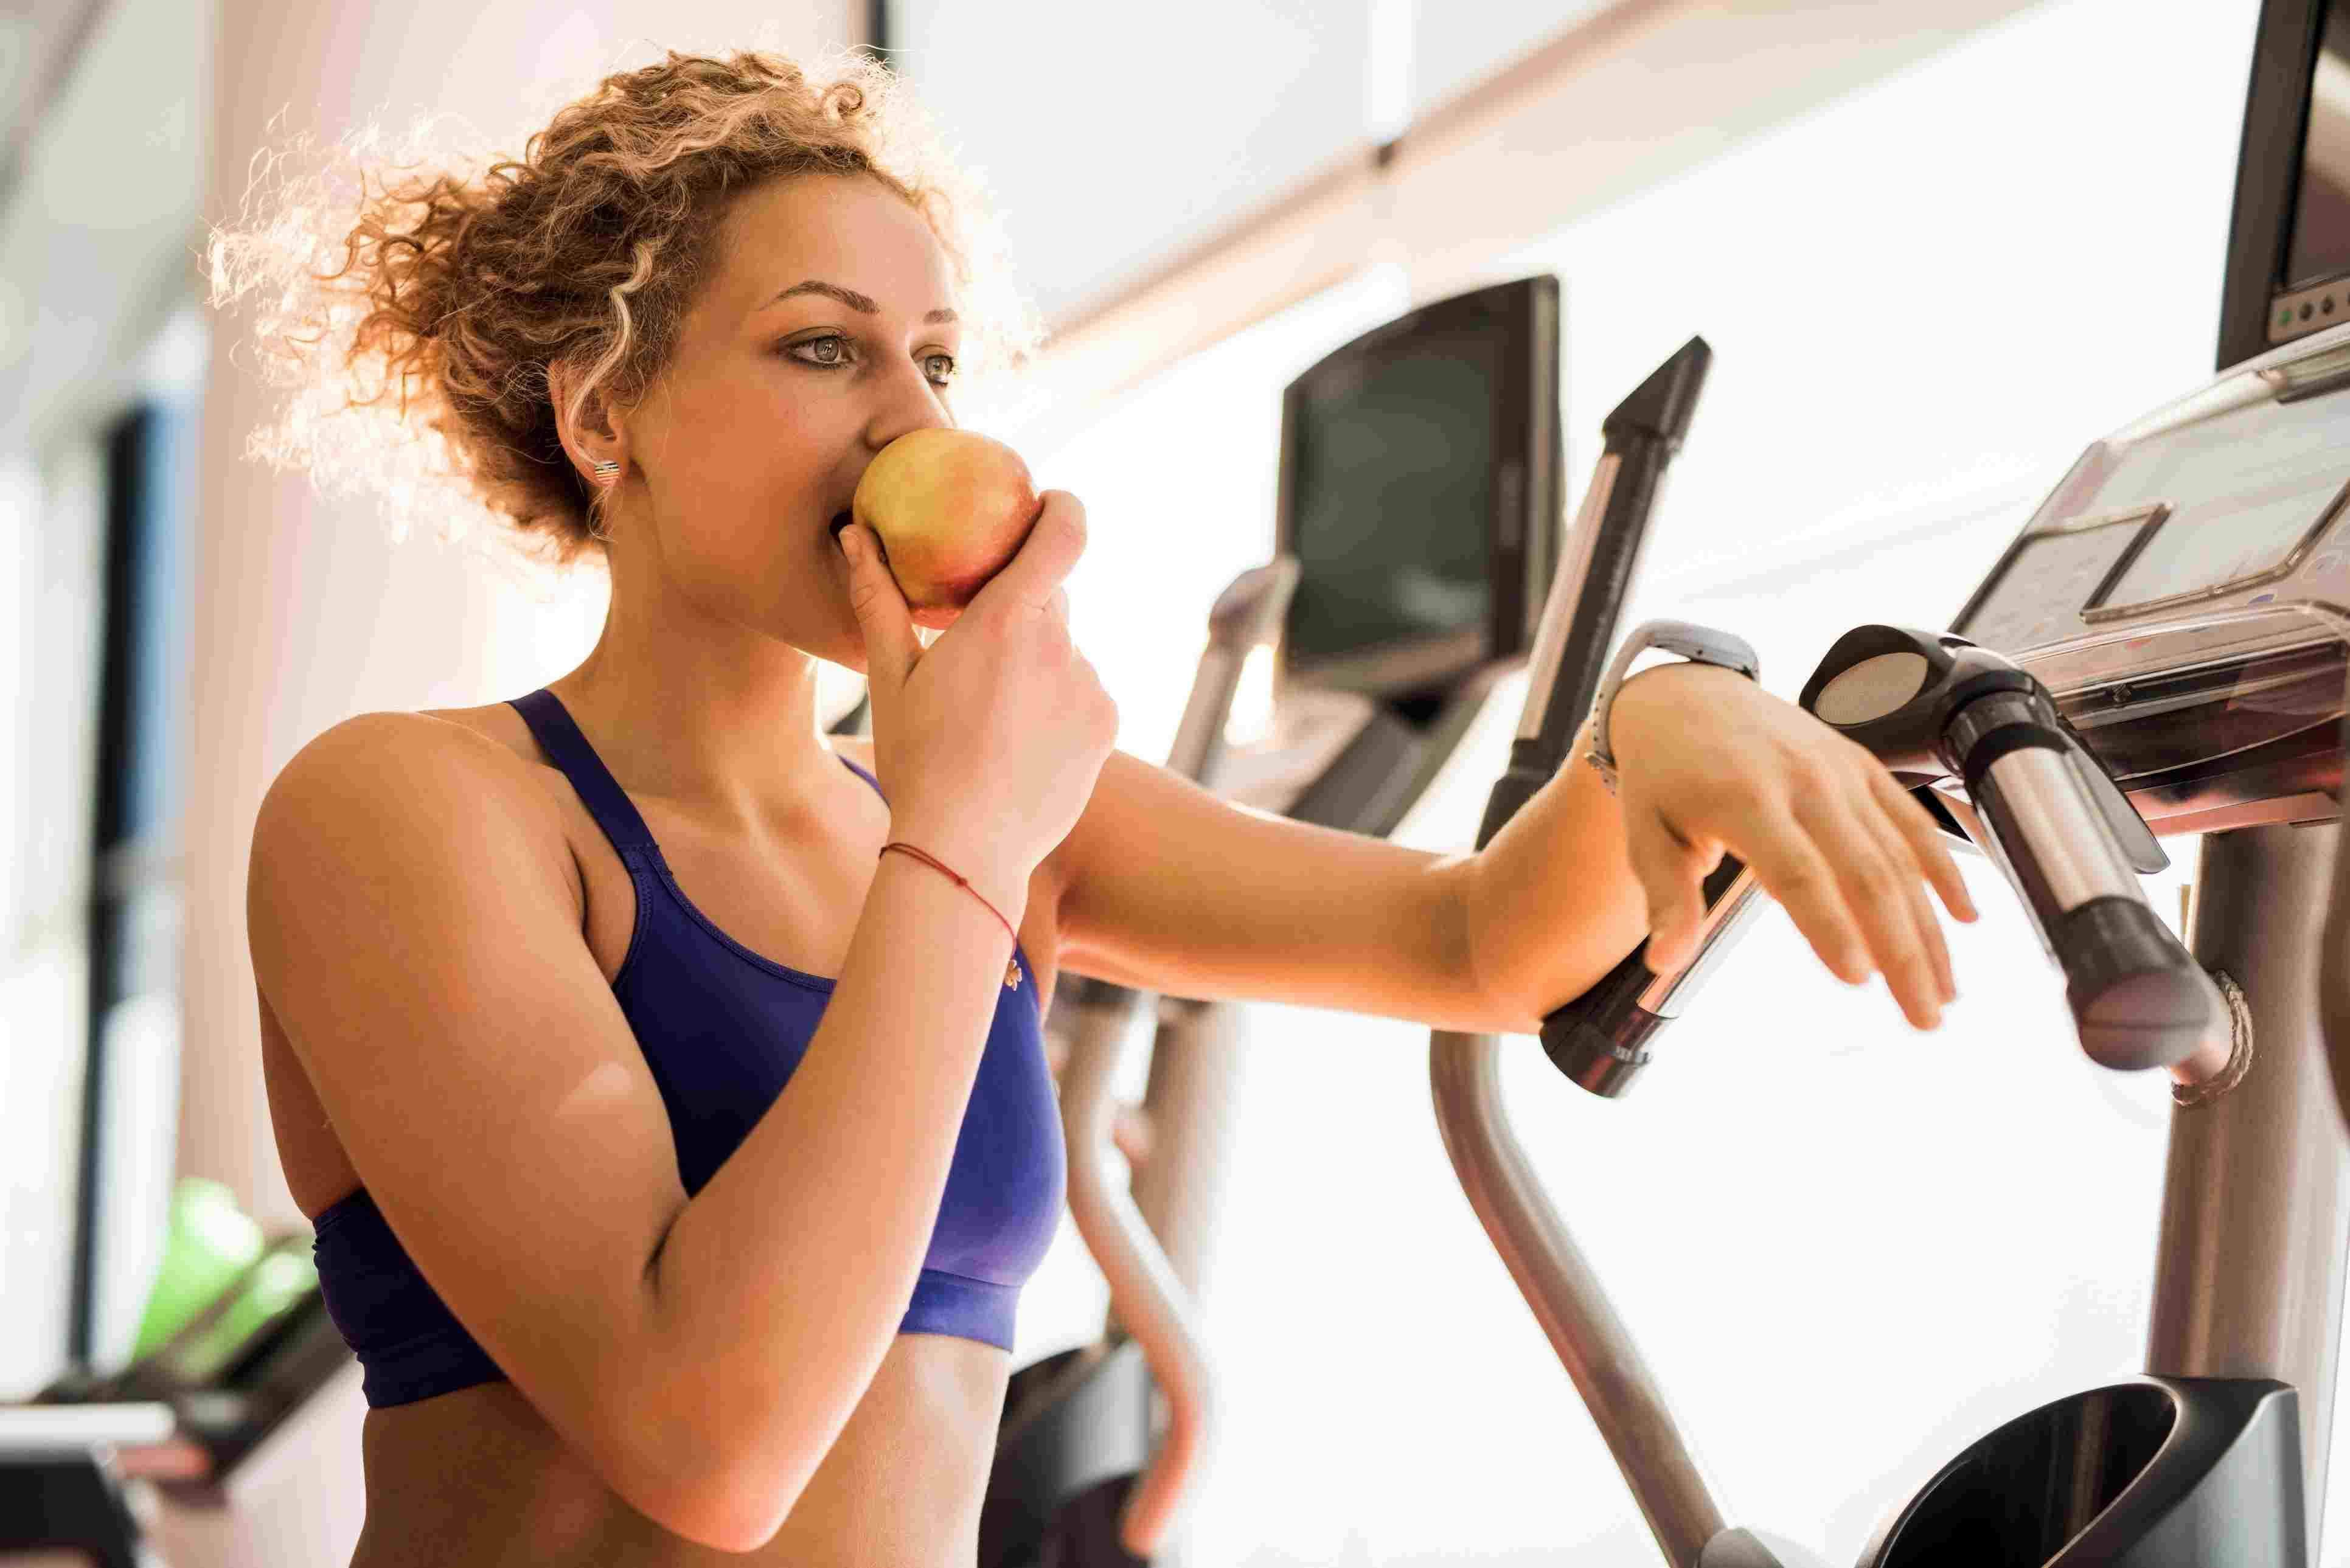 Overeating during exercise: How much is too much?